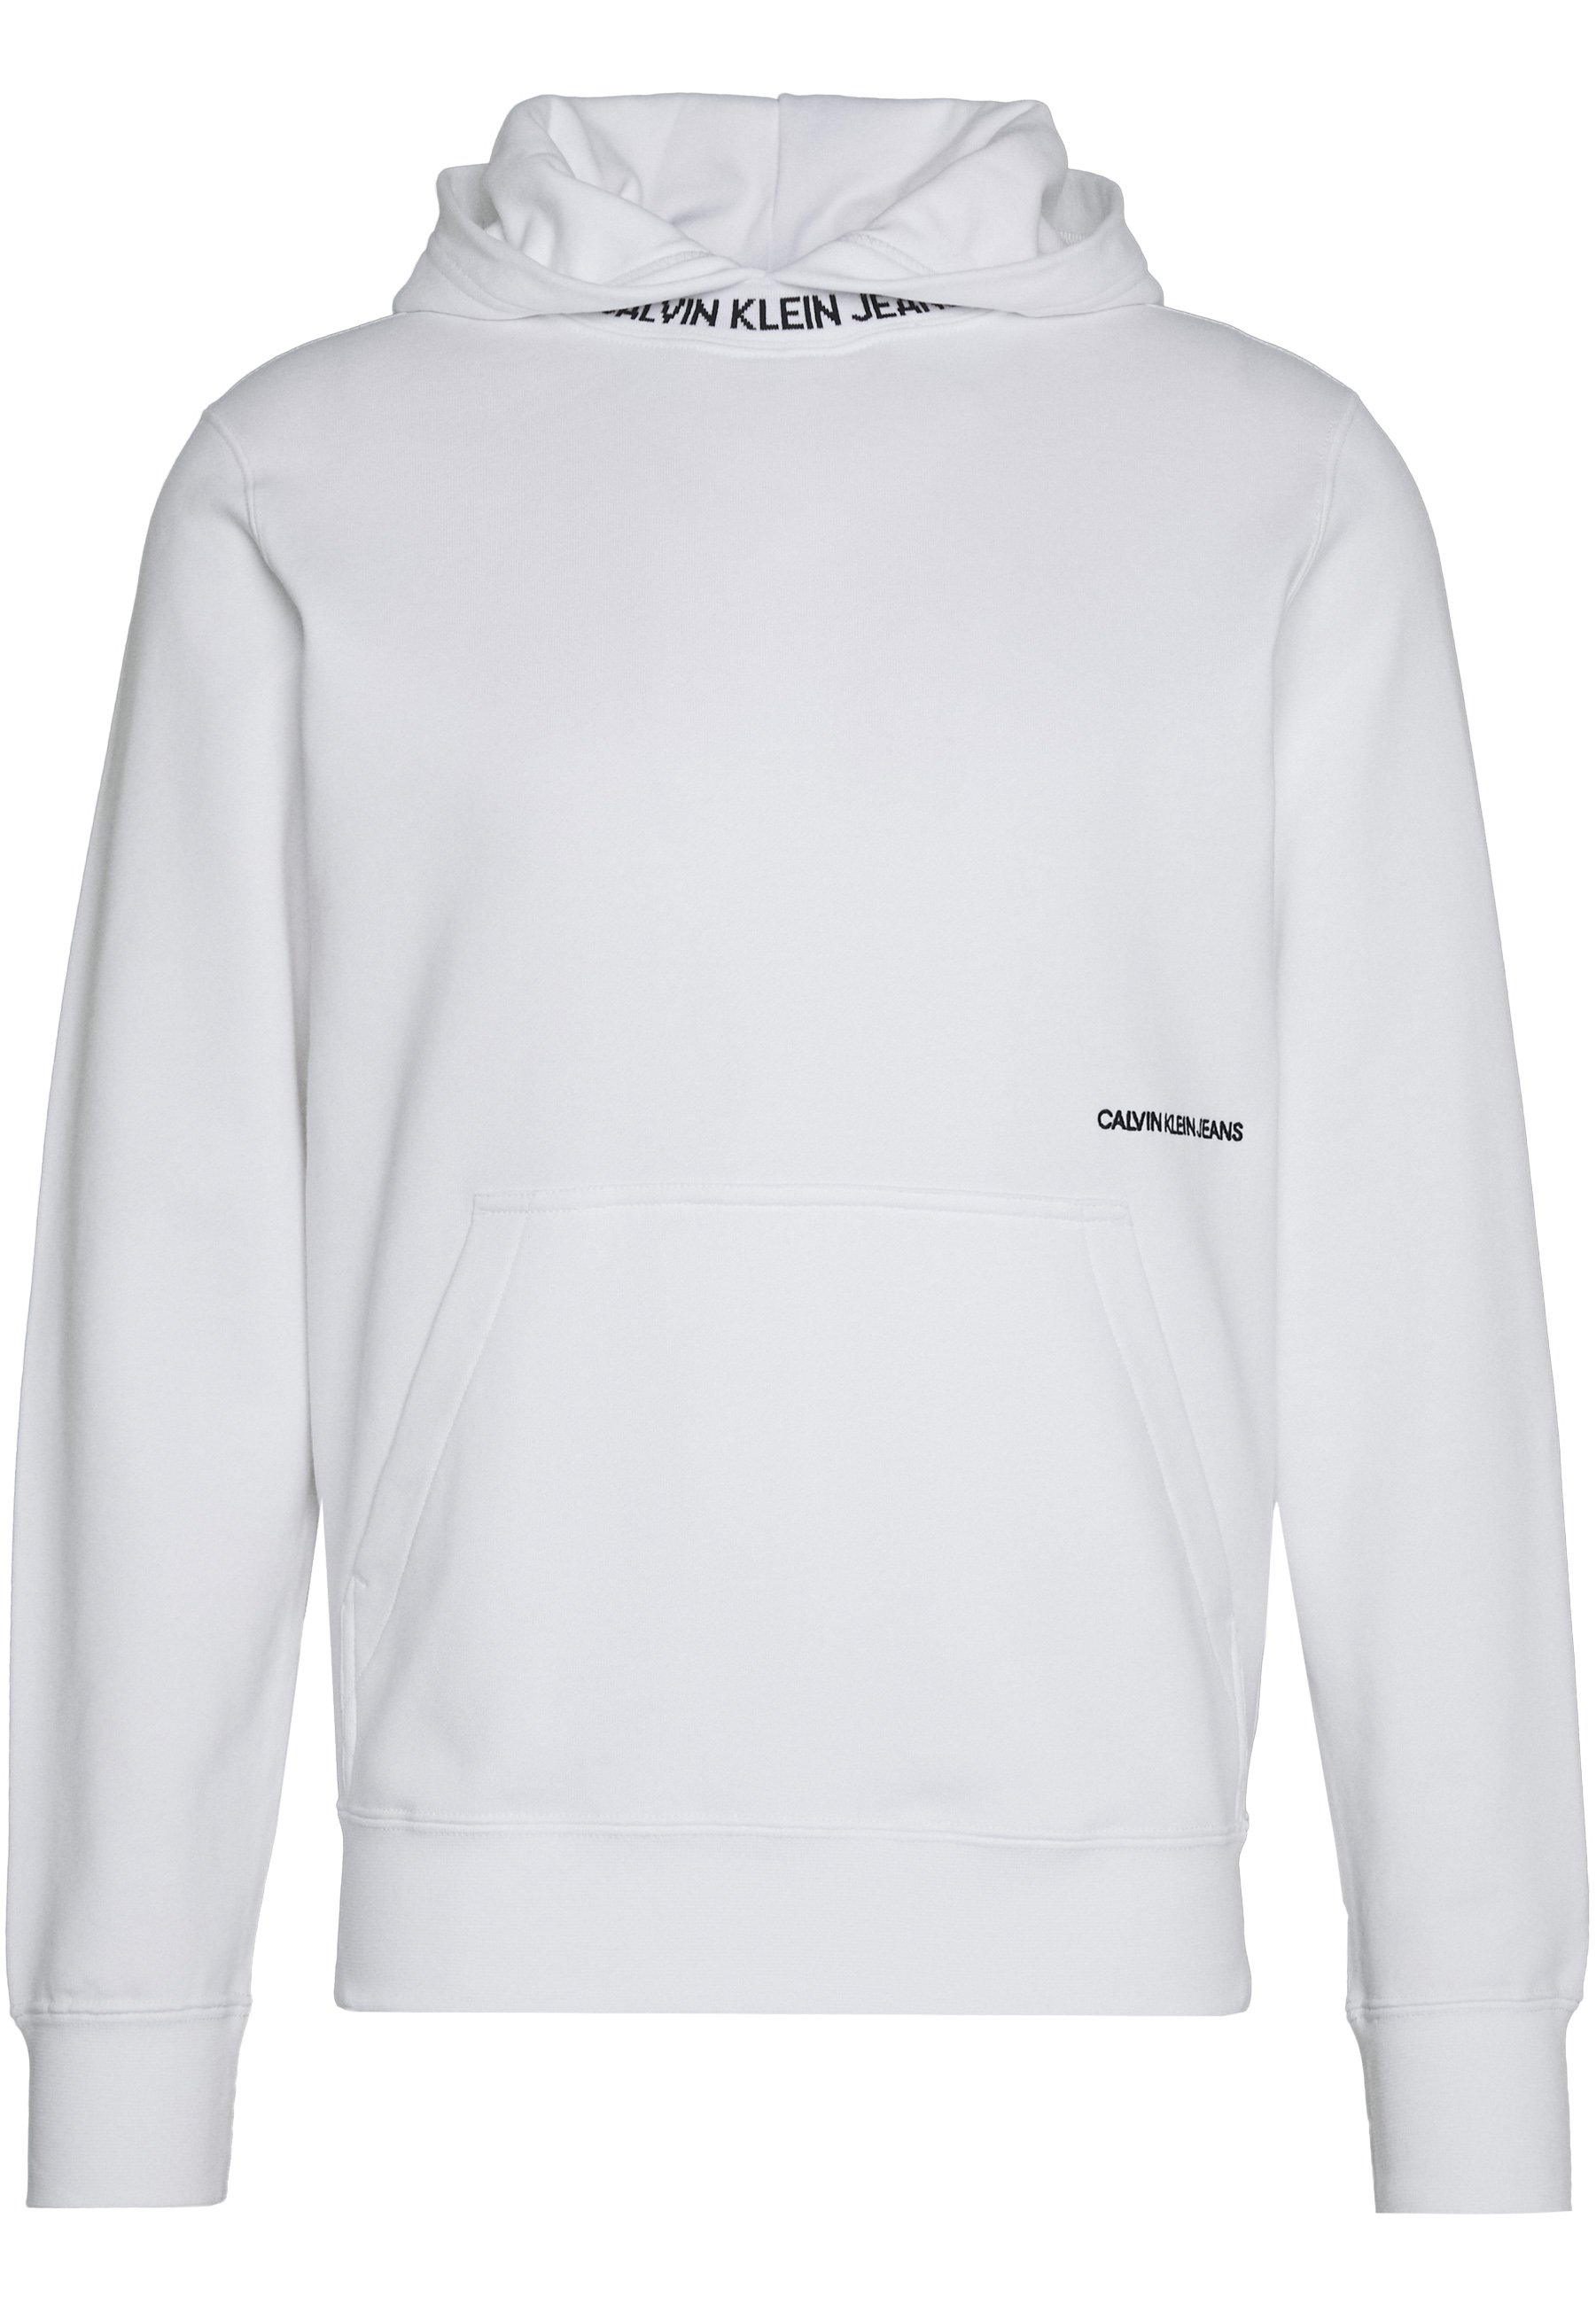 SUBTLE INSTITUTIONAL LOGO HOODIE Kapuzenpullover bright white